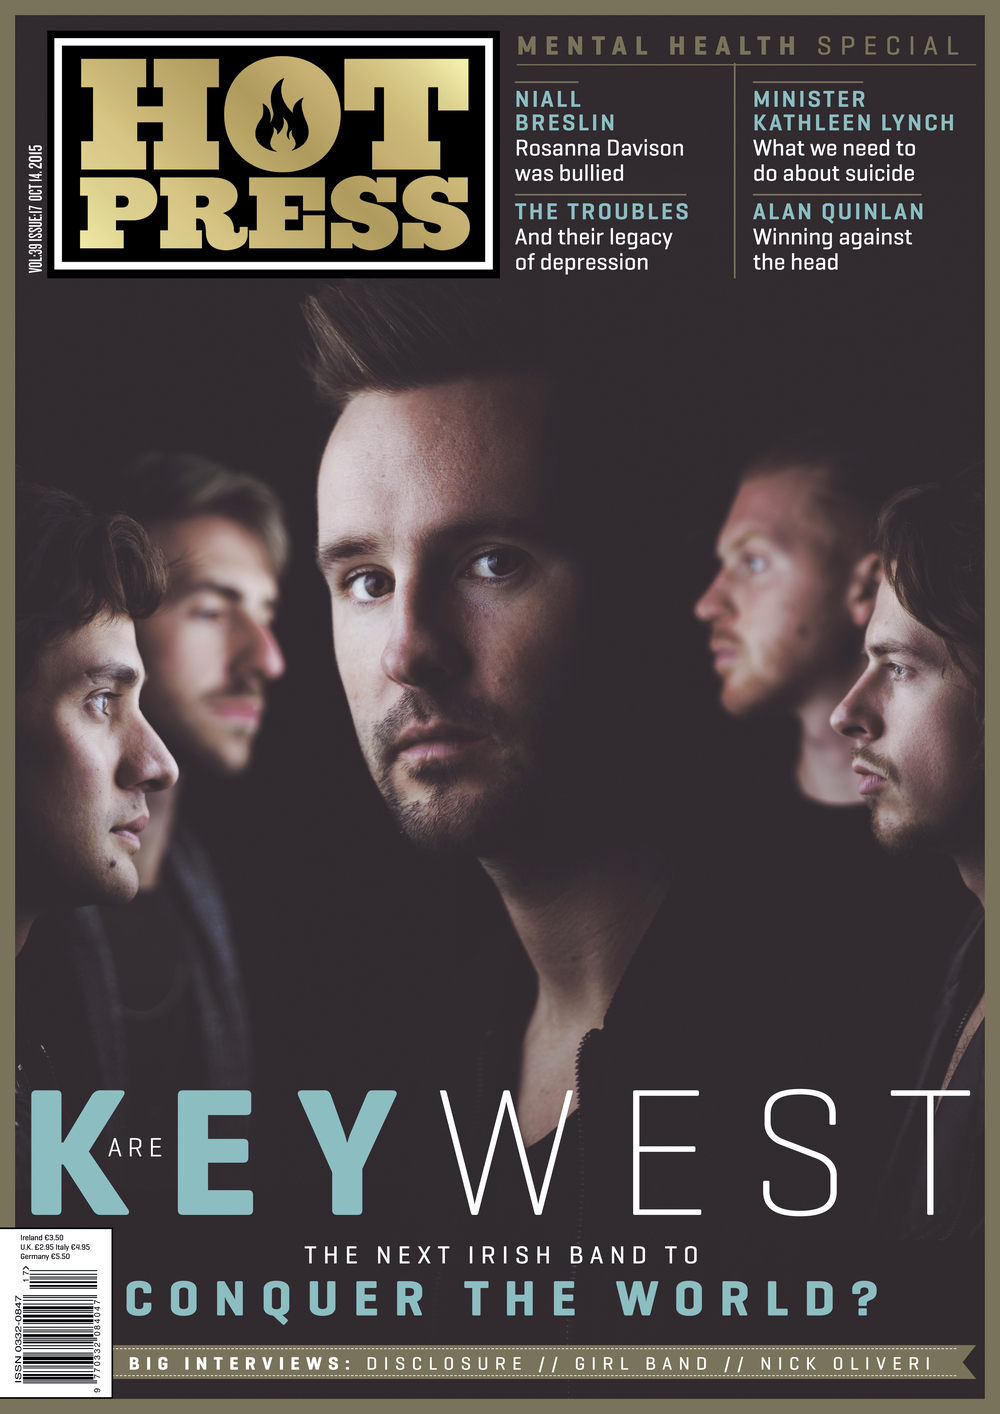 HR Keywest Cover 3917 copy.jpg